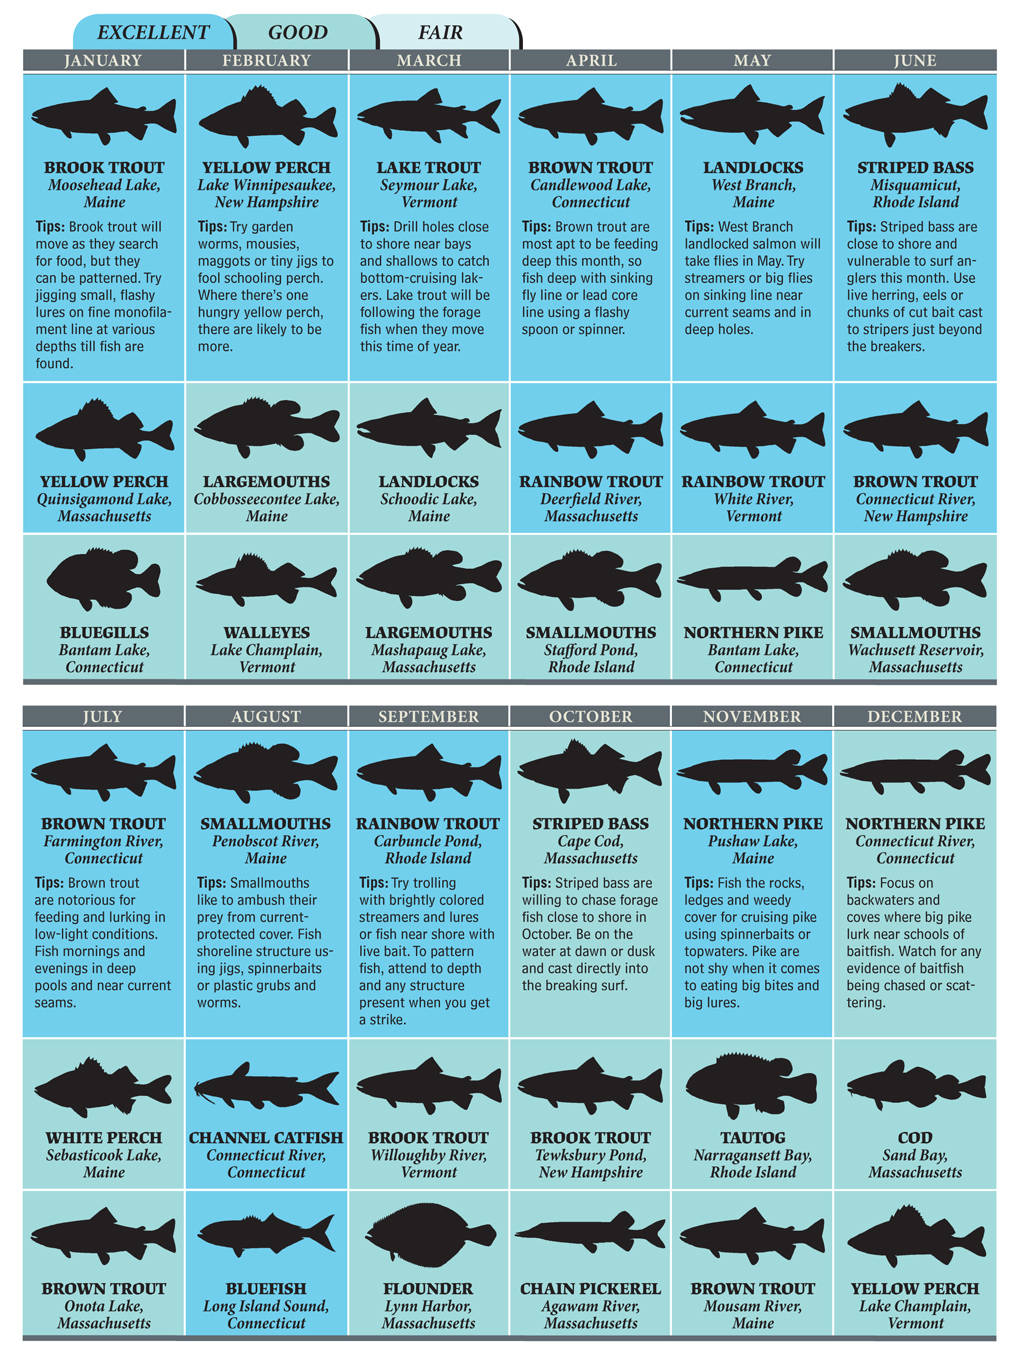 Best bets for new england fishing in 2012 for Texas freshwater fish limits